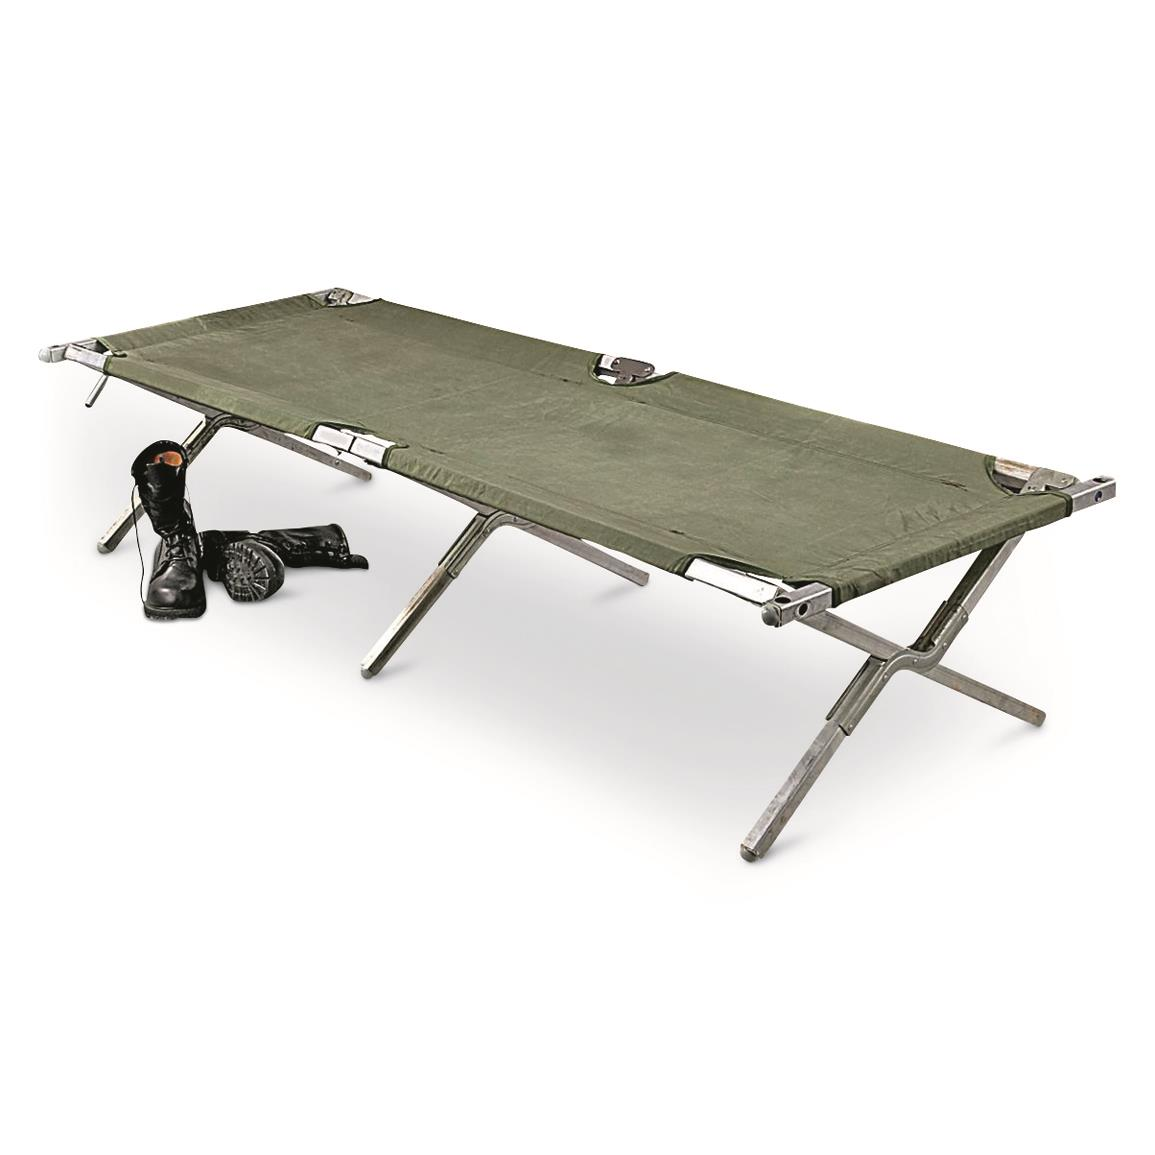 U.S. Military Surplus Aluminum Cot with New Cover, Used